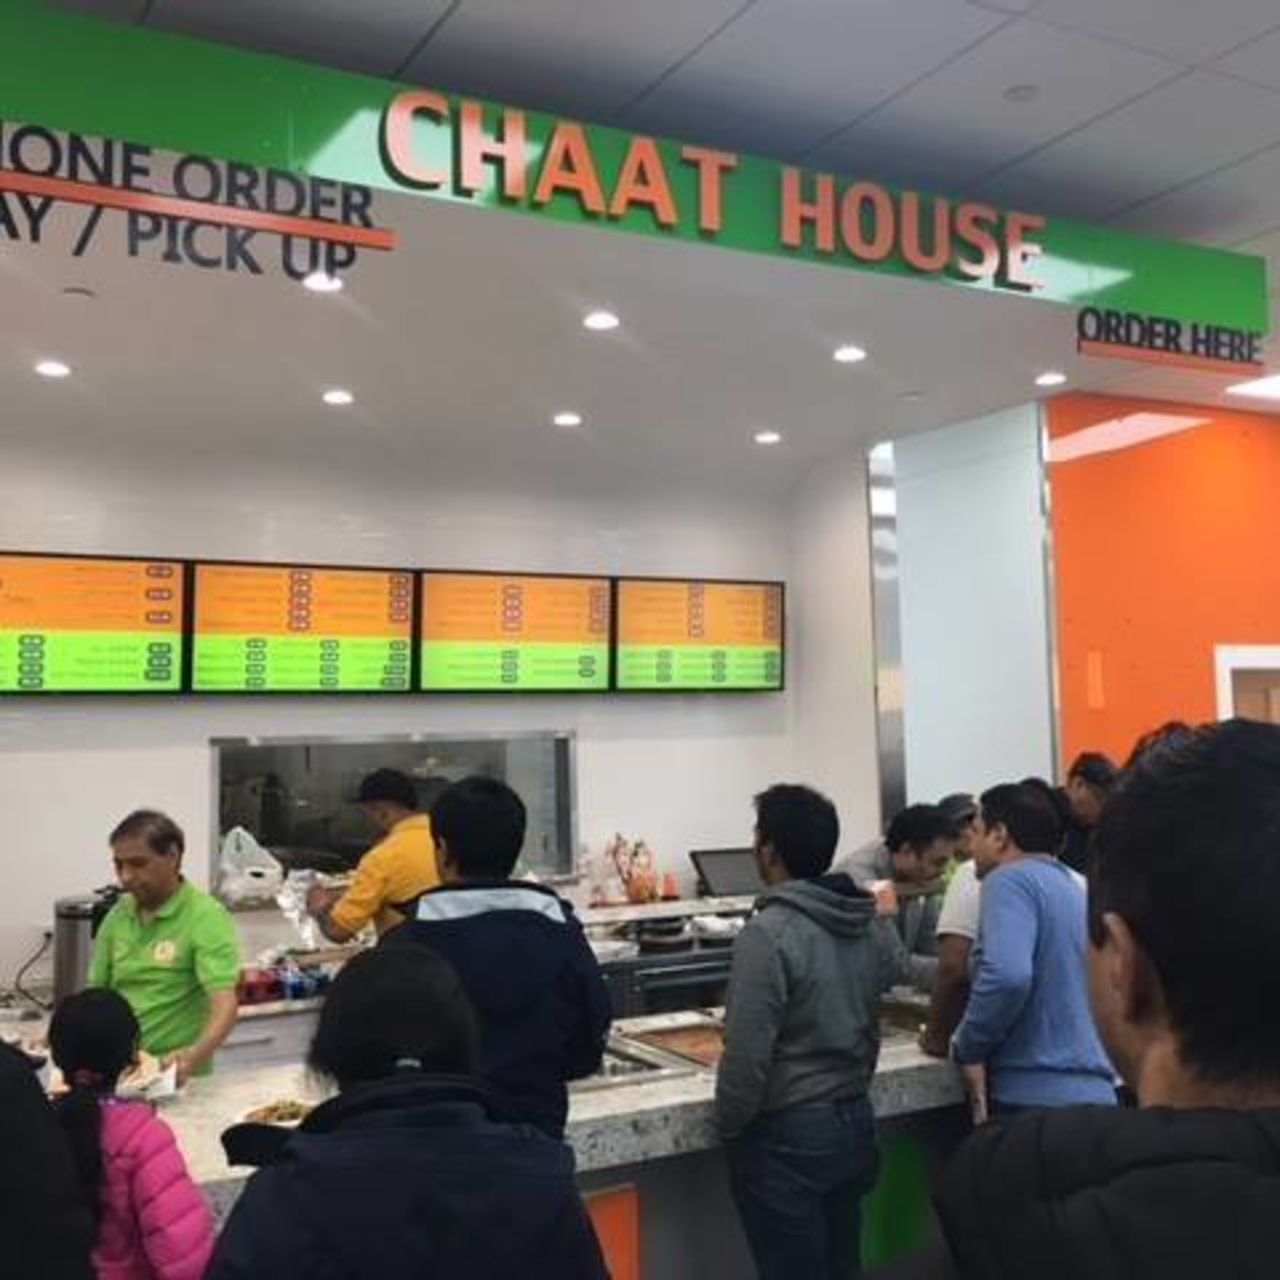 A photo of Chaat House